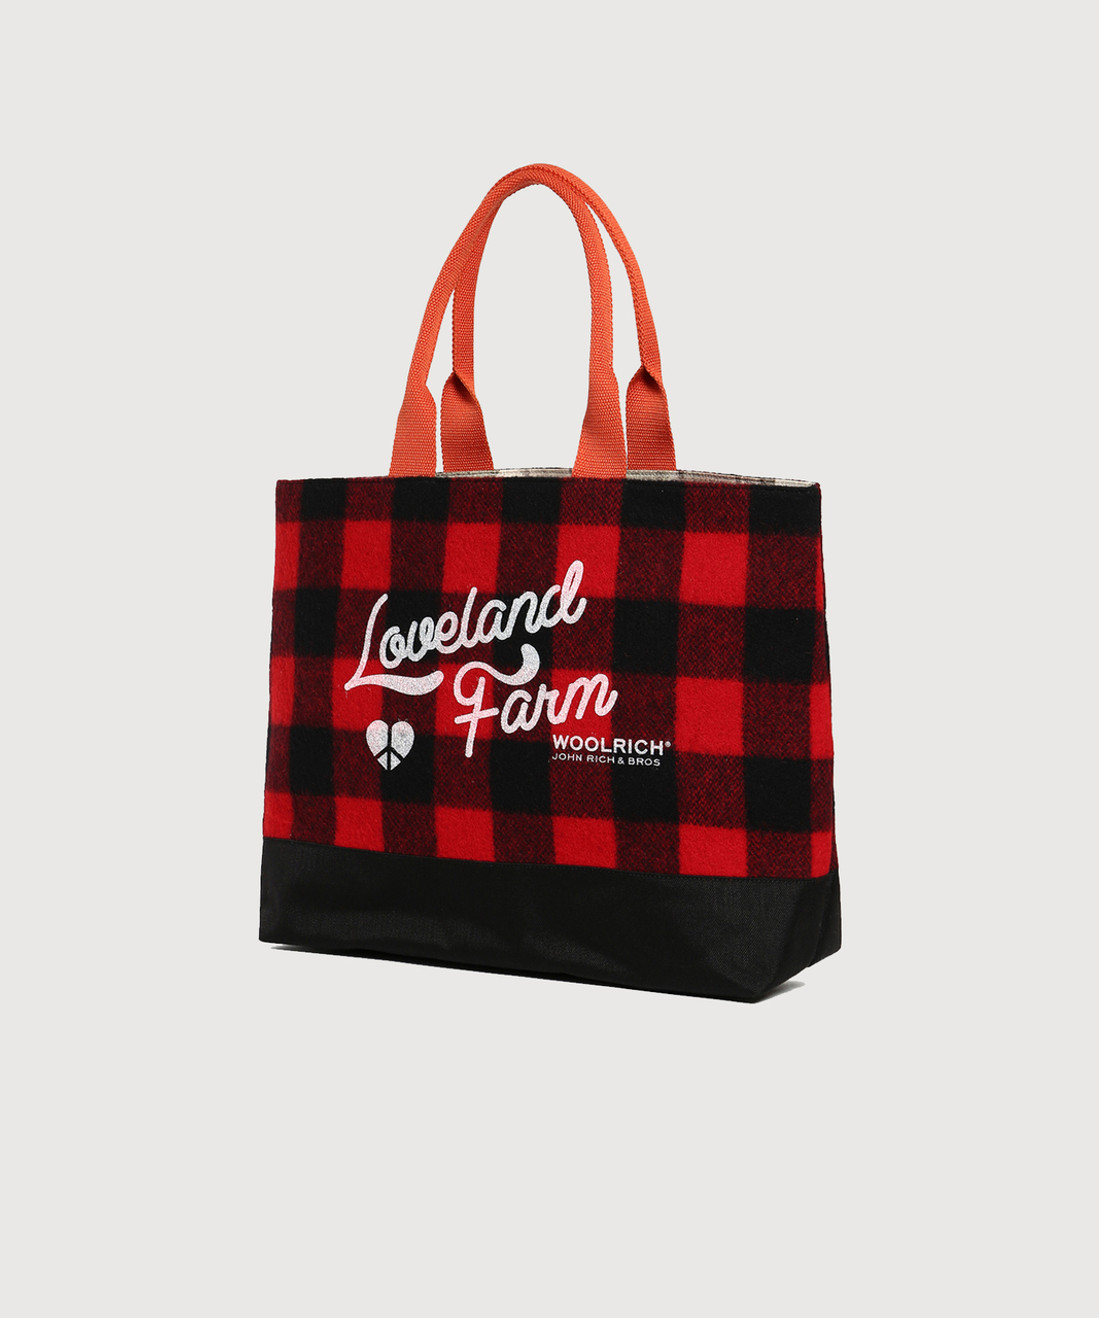 Check Bag - Woolrich x Griffin